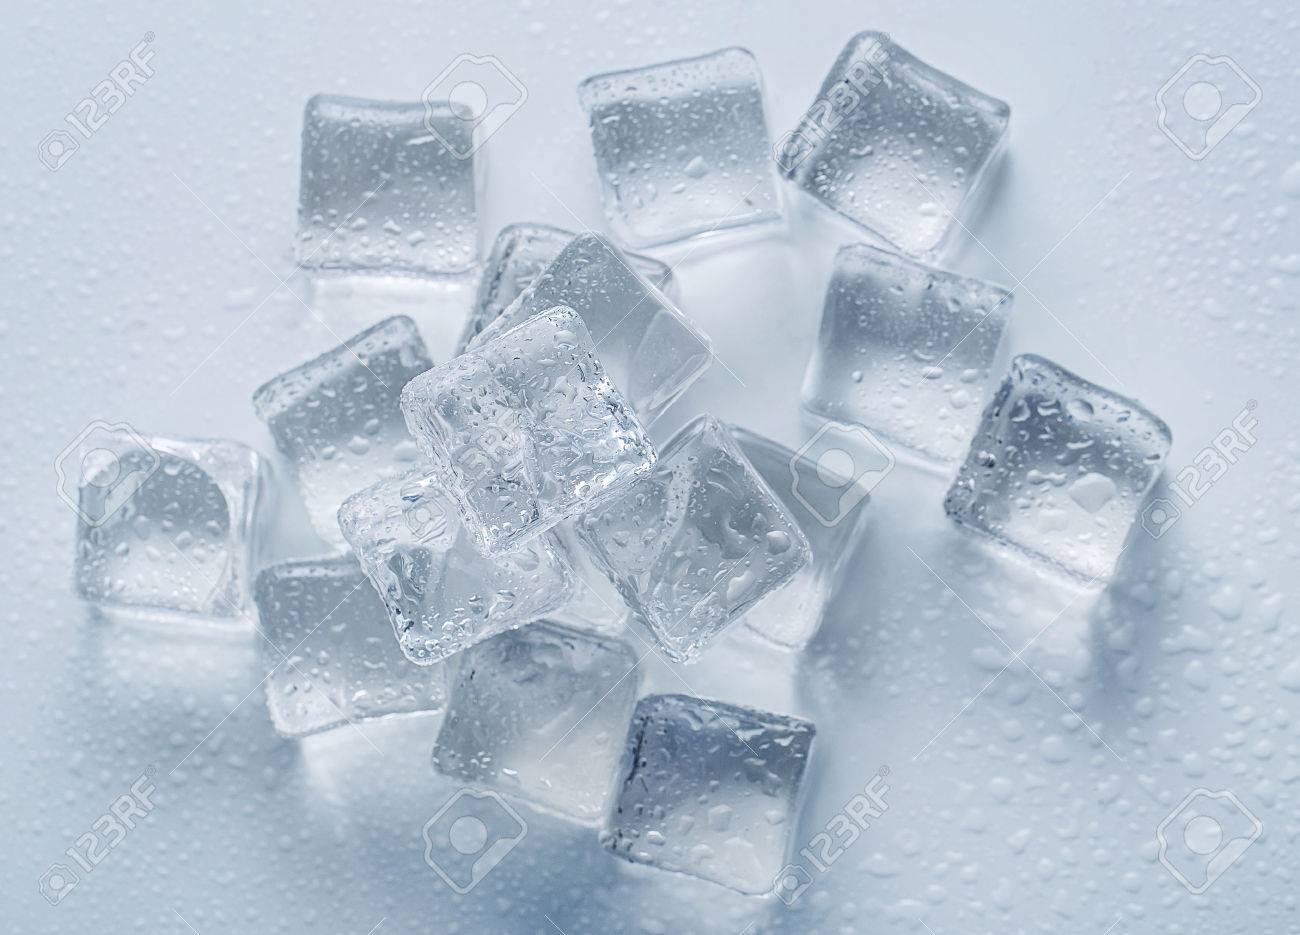 Frozen Ice Cubes On The Table Stock Photo